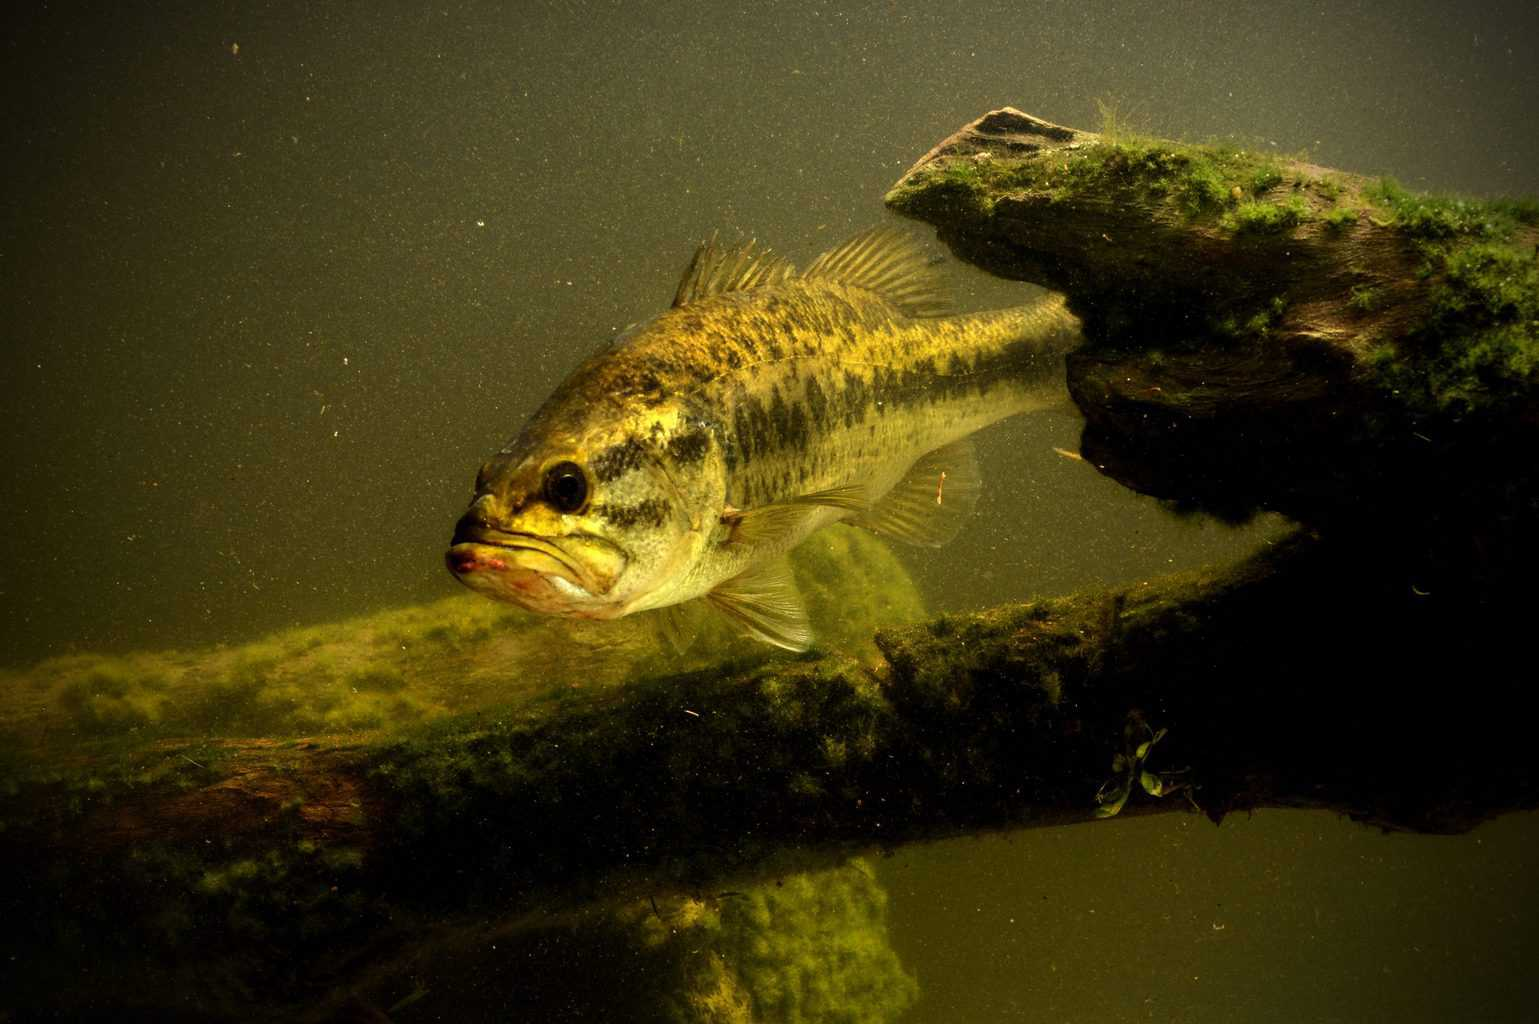 largemouth bass fish in lake swimming - what is the best time to catch bass